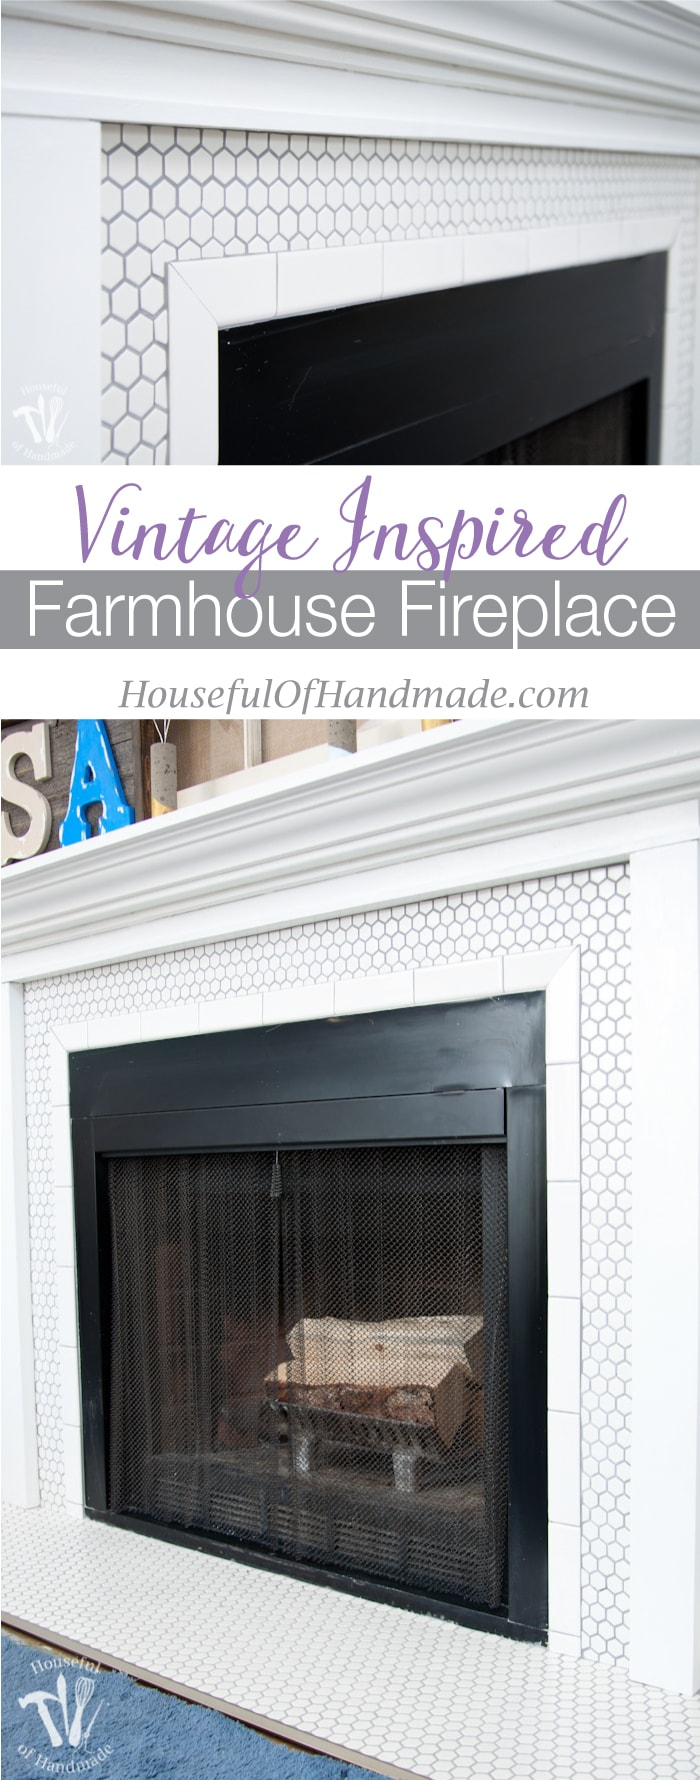 Vintage Inspired Farmhouse Fireplace Reveal Houseful Of Handmade